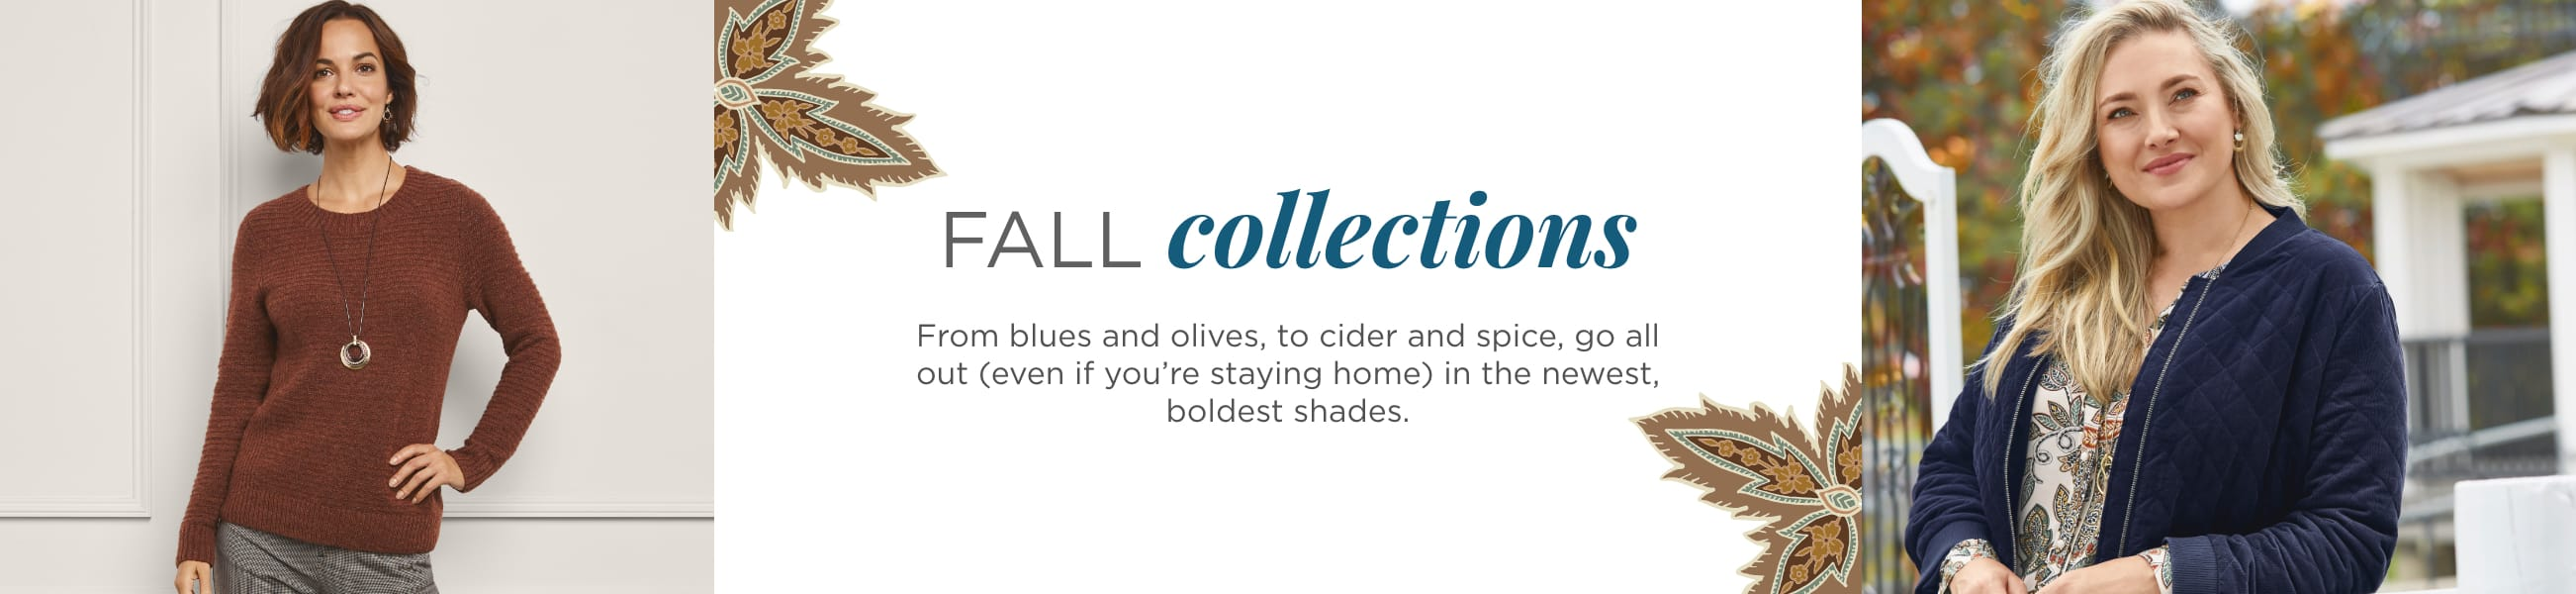 Fall Collections. From blues and olives to cider and spice, go all-out (even if you're staying home) in the newest, boldest shades..